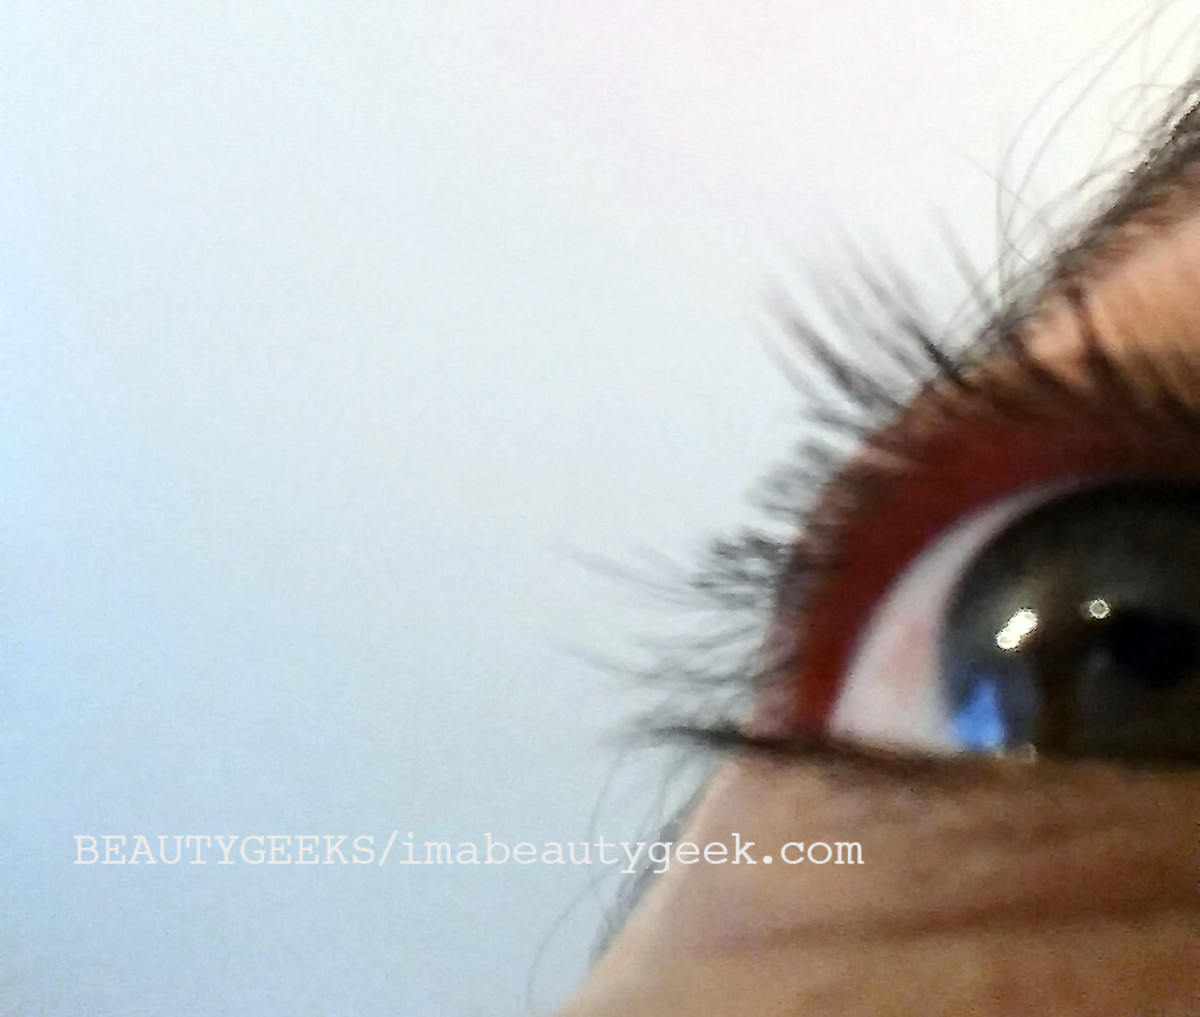 Our poor friend's chopped lashes after she used the Stella lash curler.